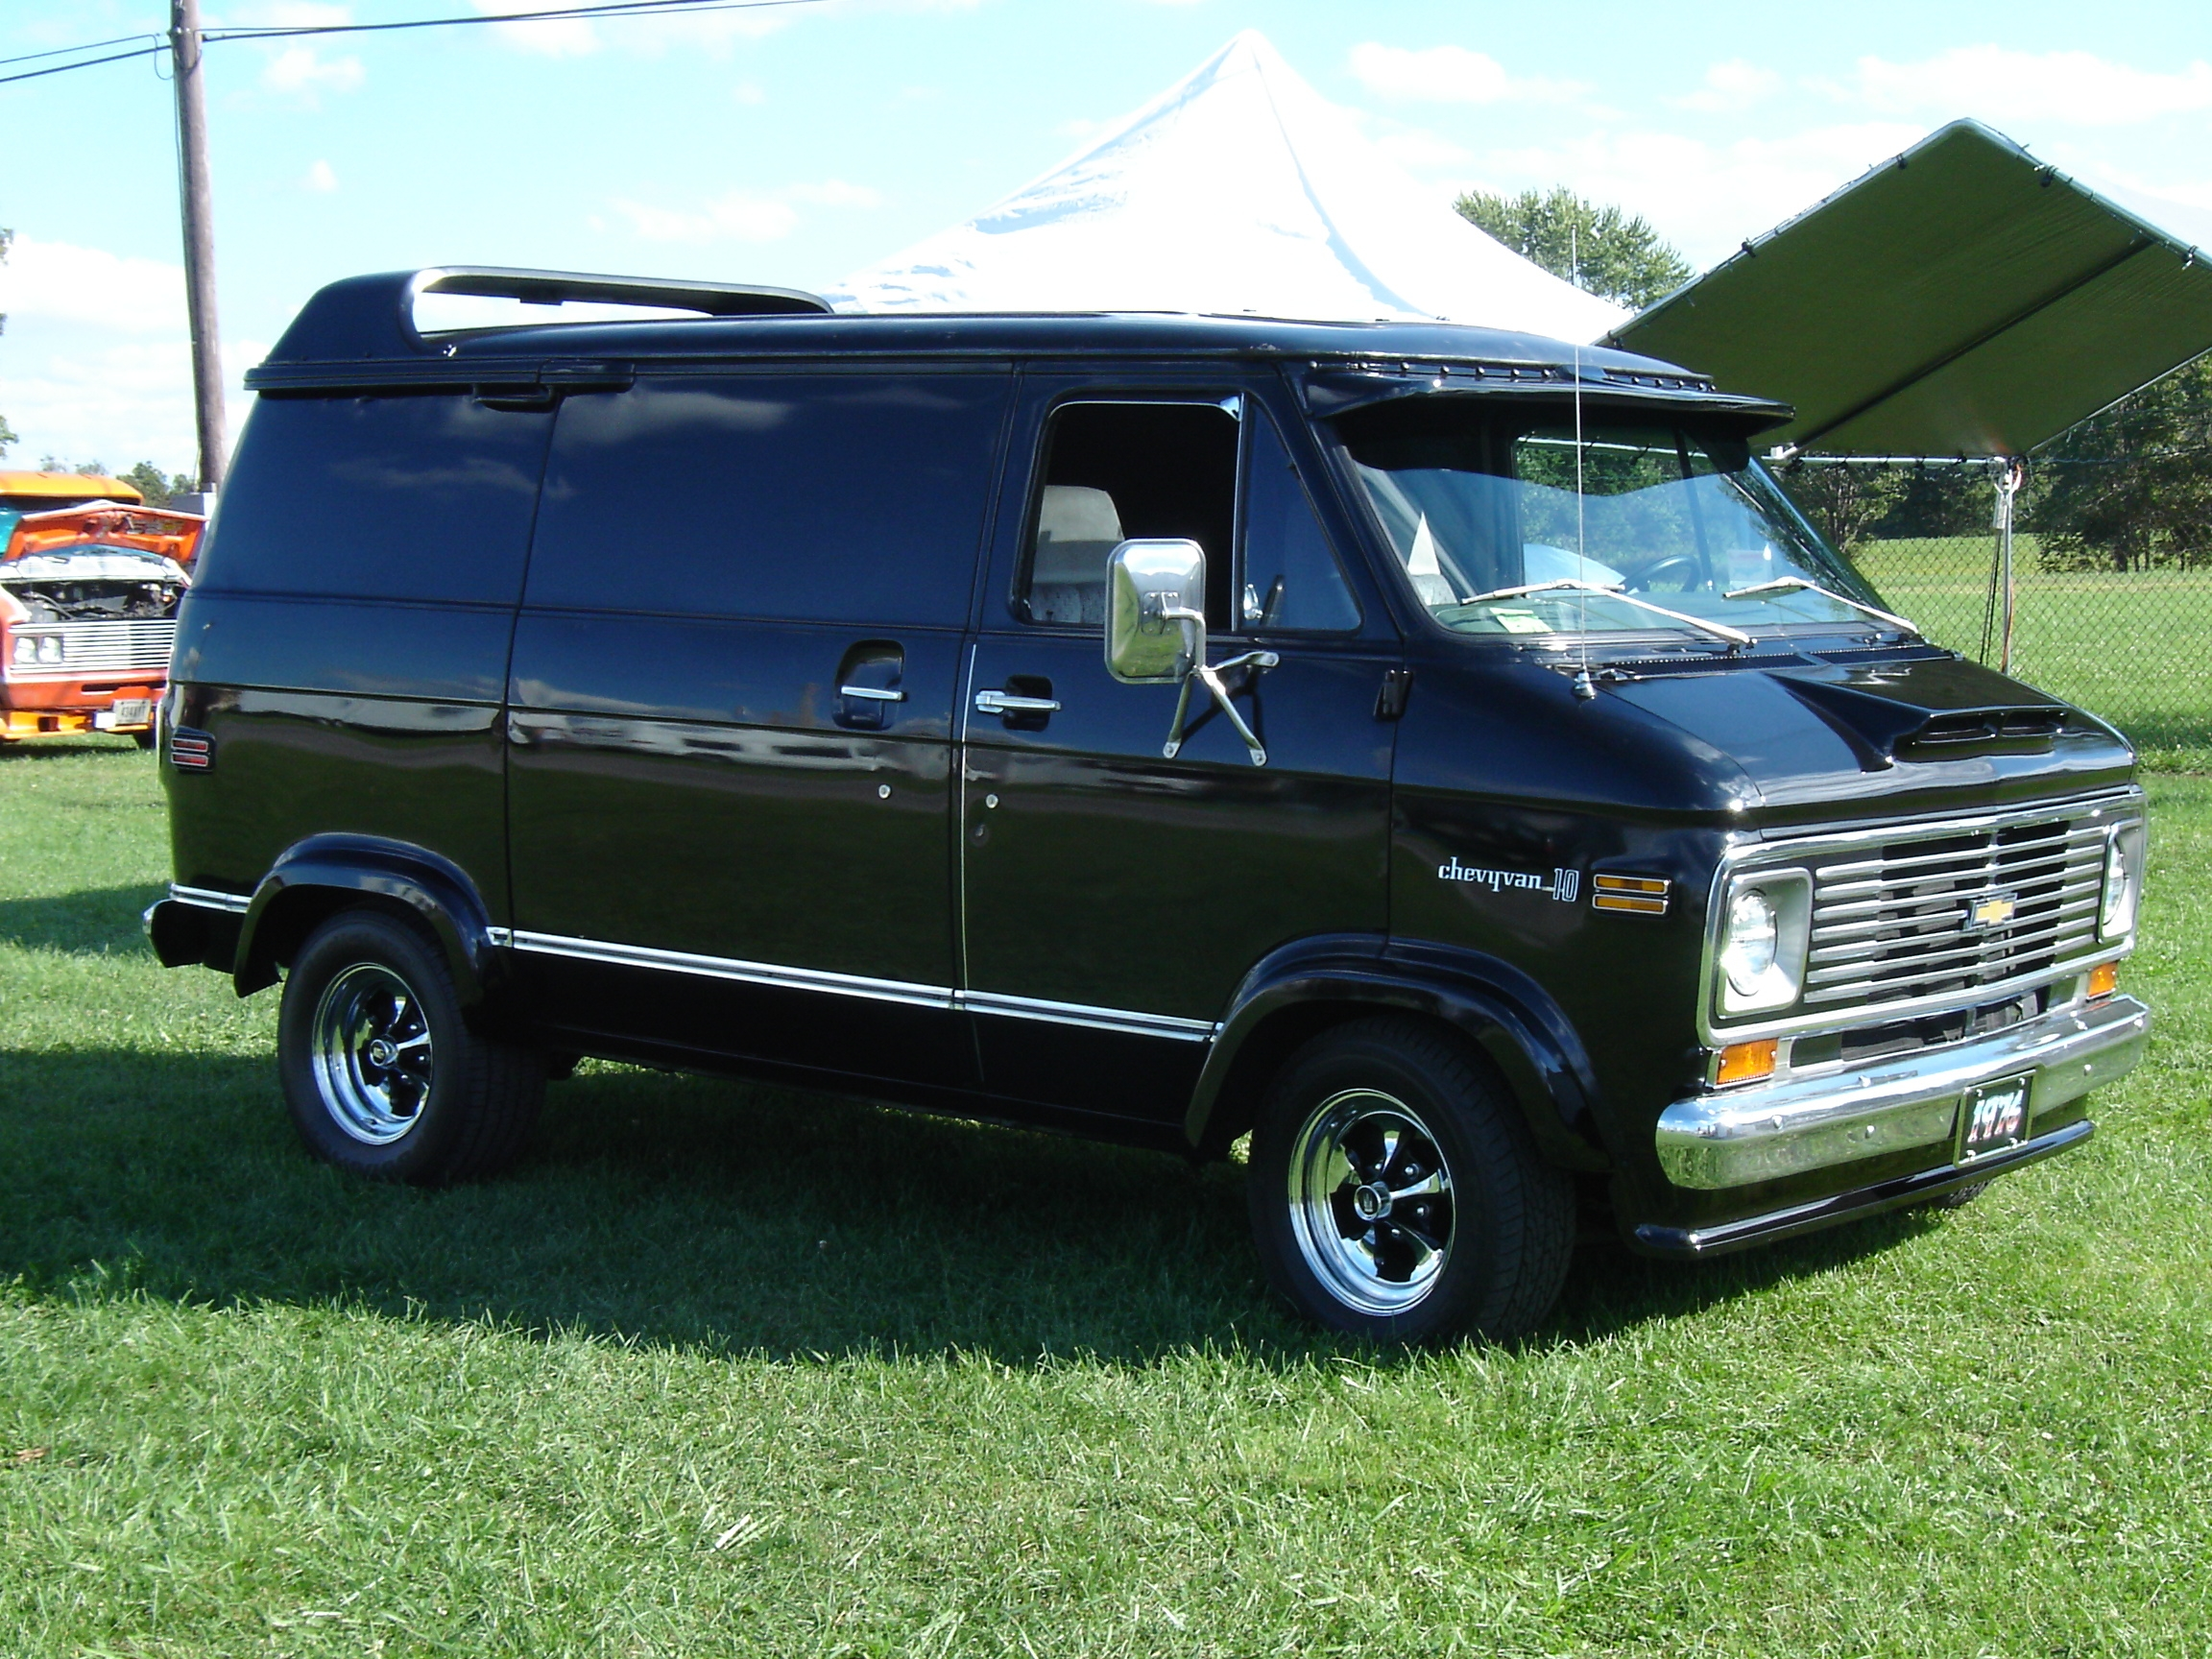 Chevrolet G10 Van Free Download 1988 Chevy Wire Diagramalternatorg20 3 4 Ton Full Size 2724px Image 2